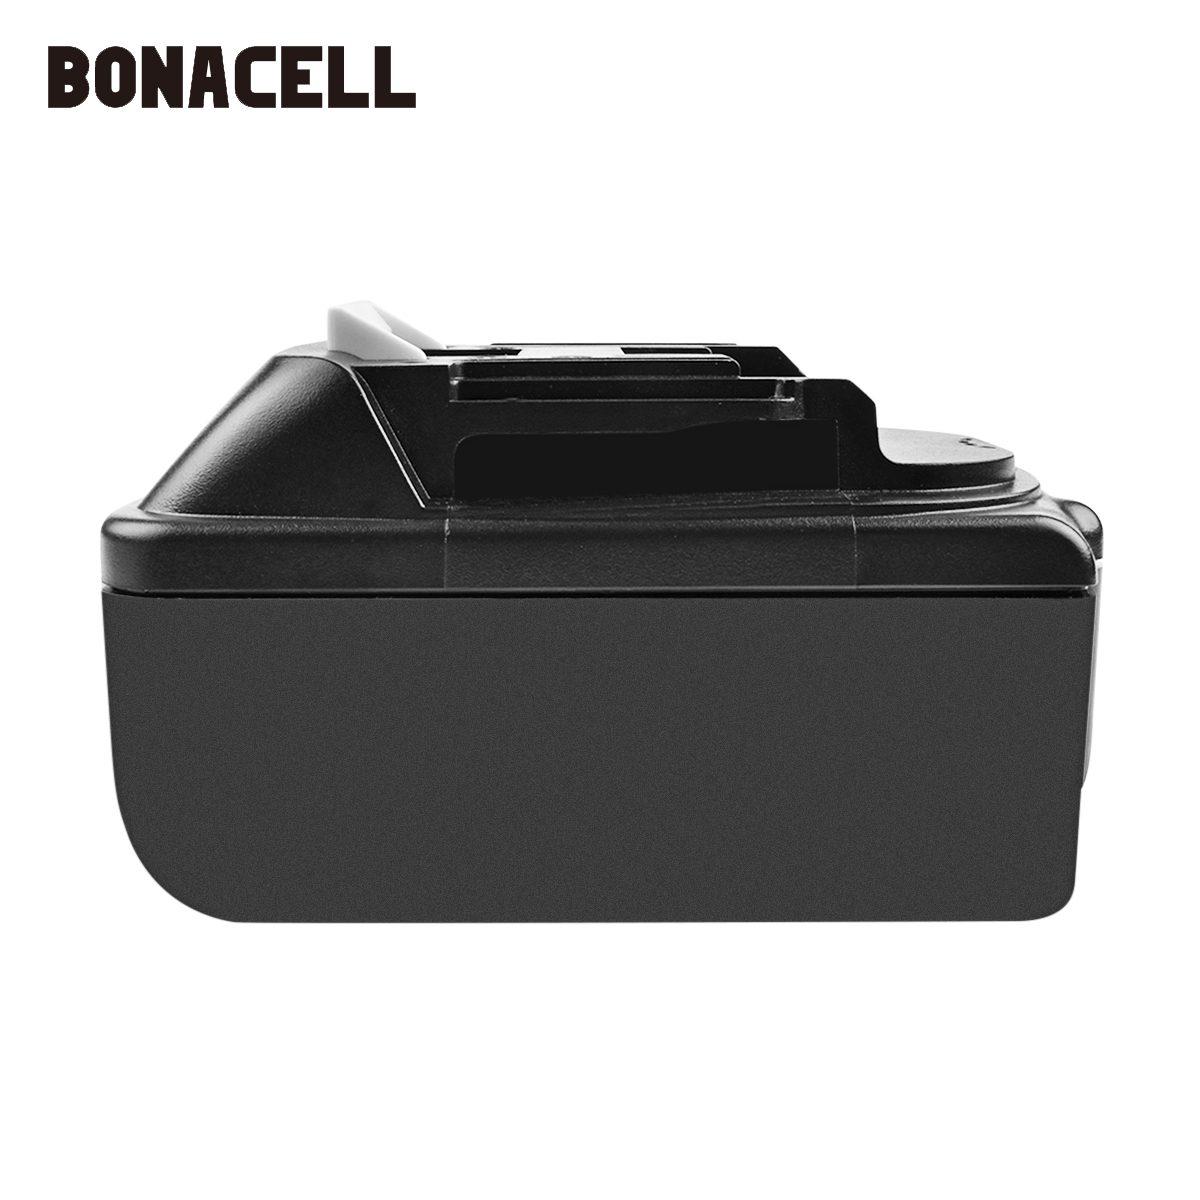 Image 4 - Bonacell 18V 4000mAh BL1830 Lithium Battery Pack Replacement for Makita Drill LXT400 194205 3 194309 1 BL1815 BL1840 BL1850 L30-in Replacement Batteries from Consumer Electronics